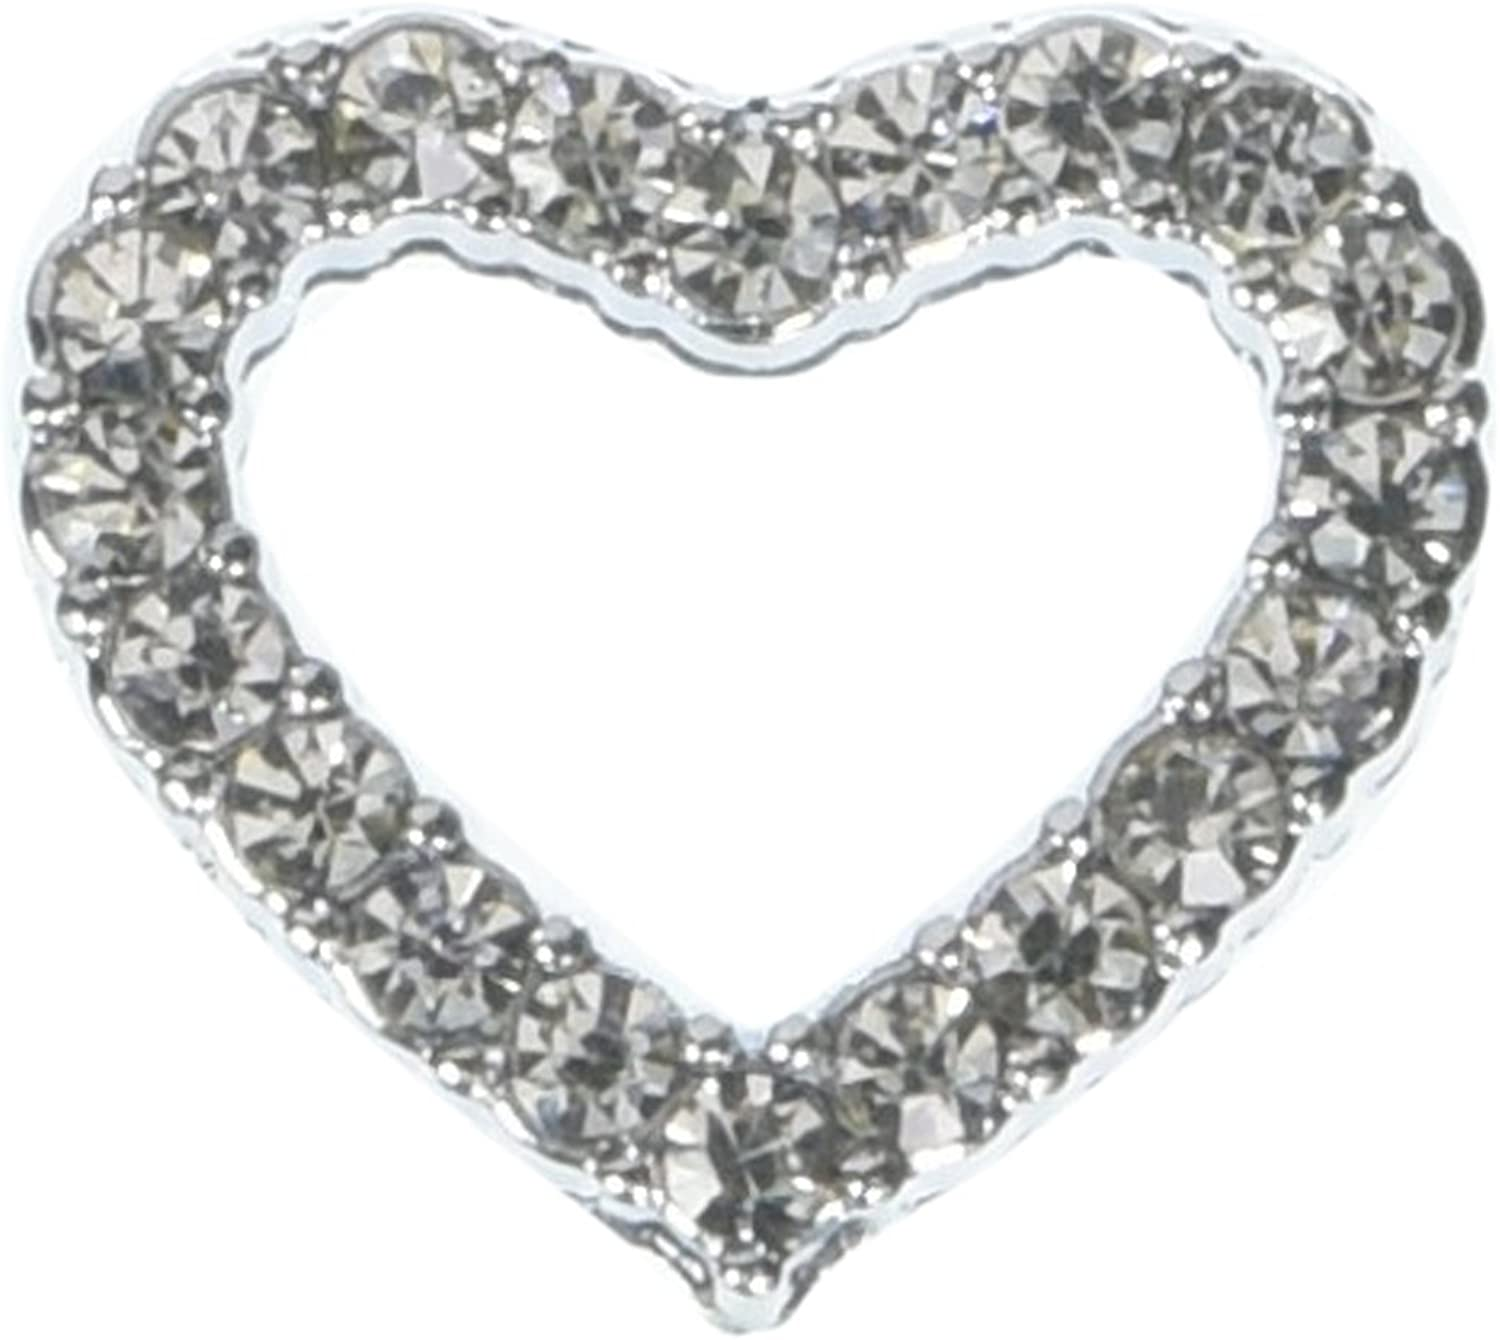 Mirage Pet Products Slider Heart Collar Charm, 3 4Inch, Clear